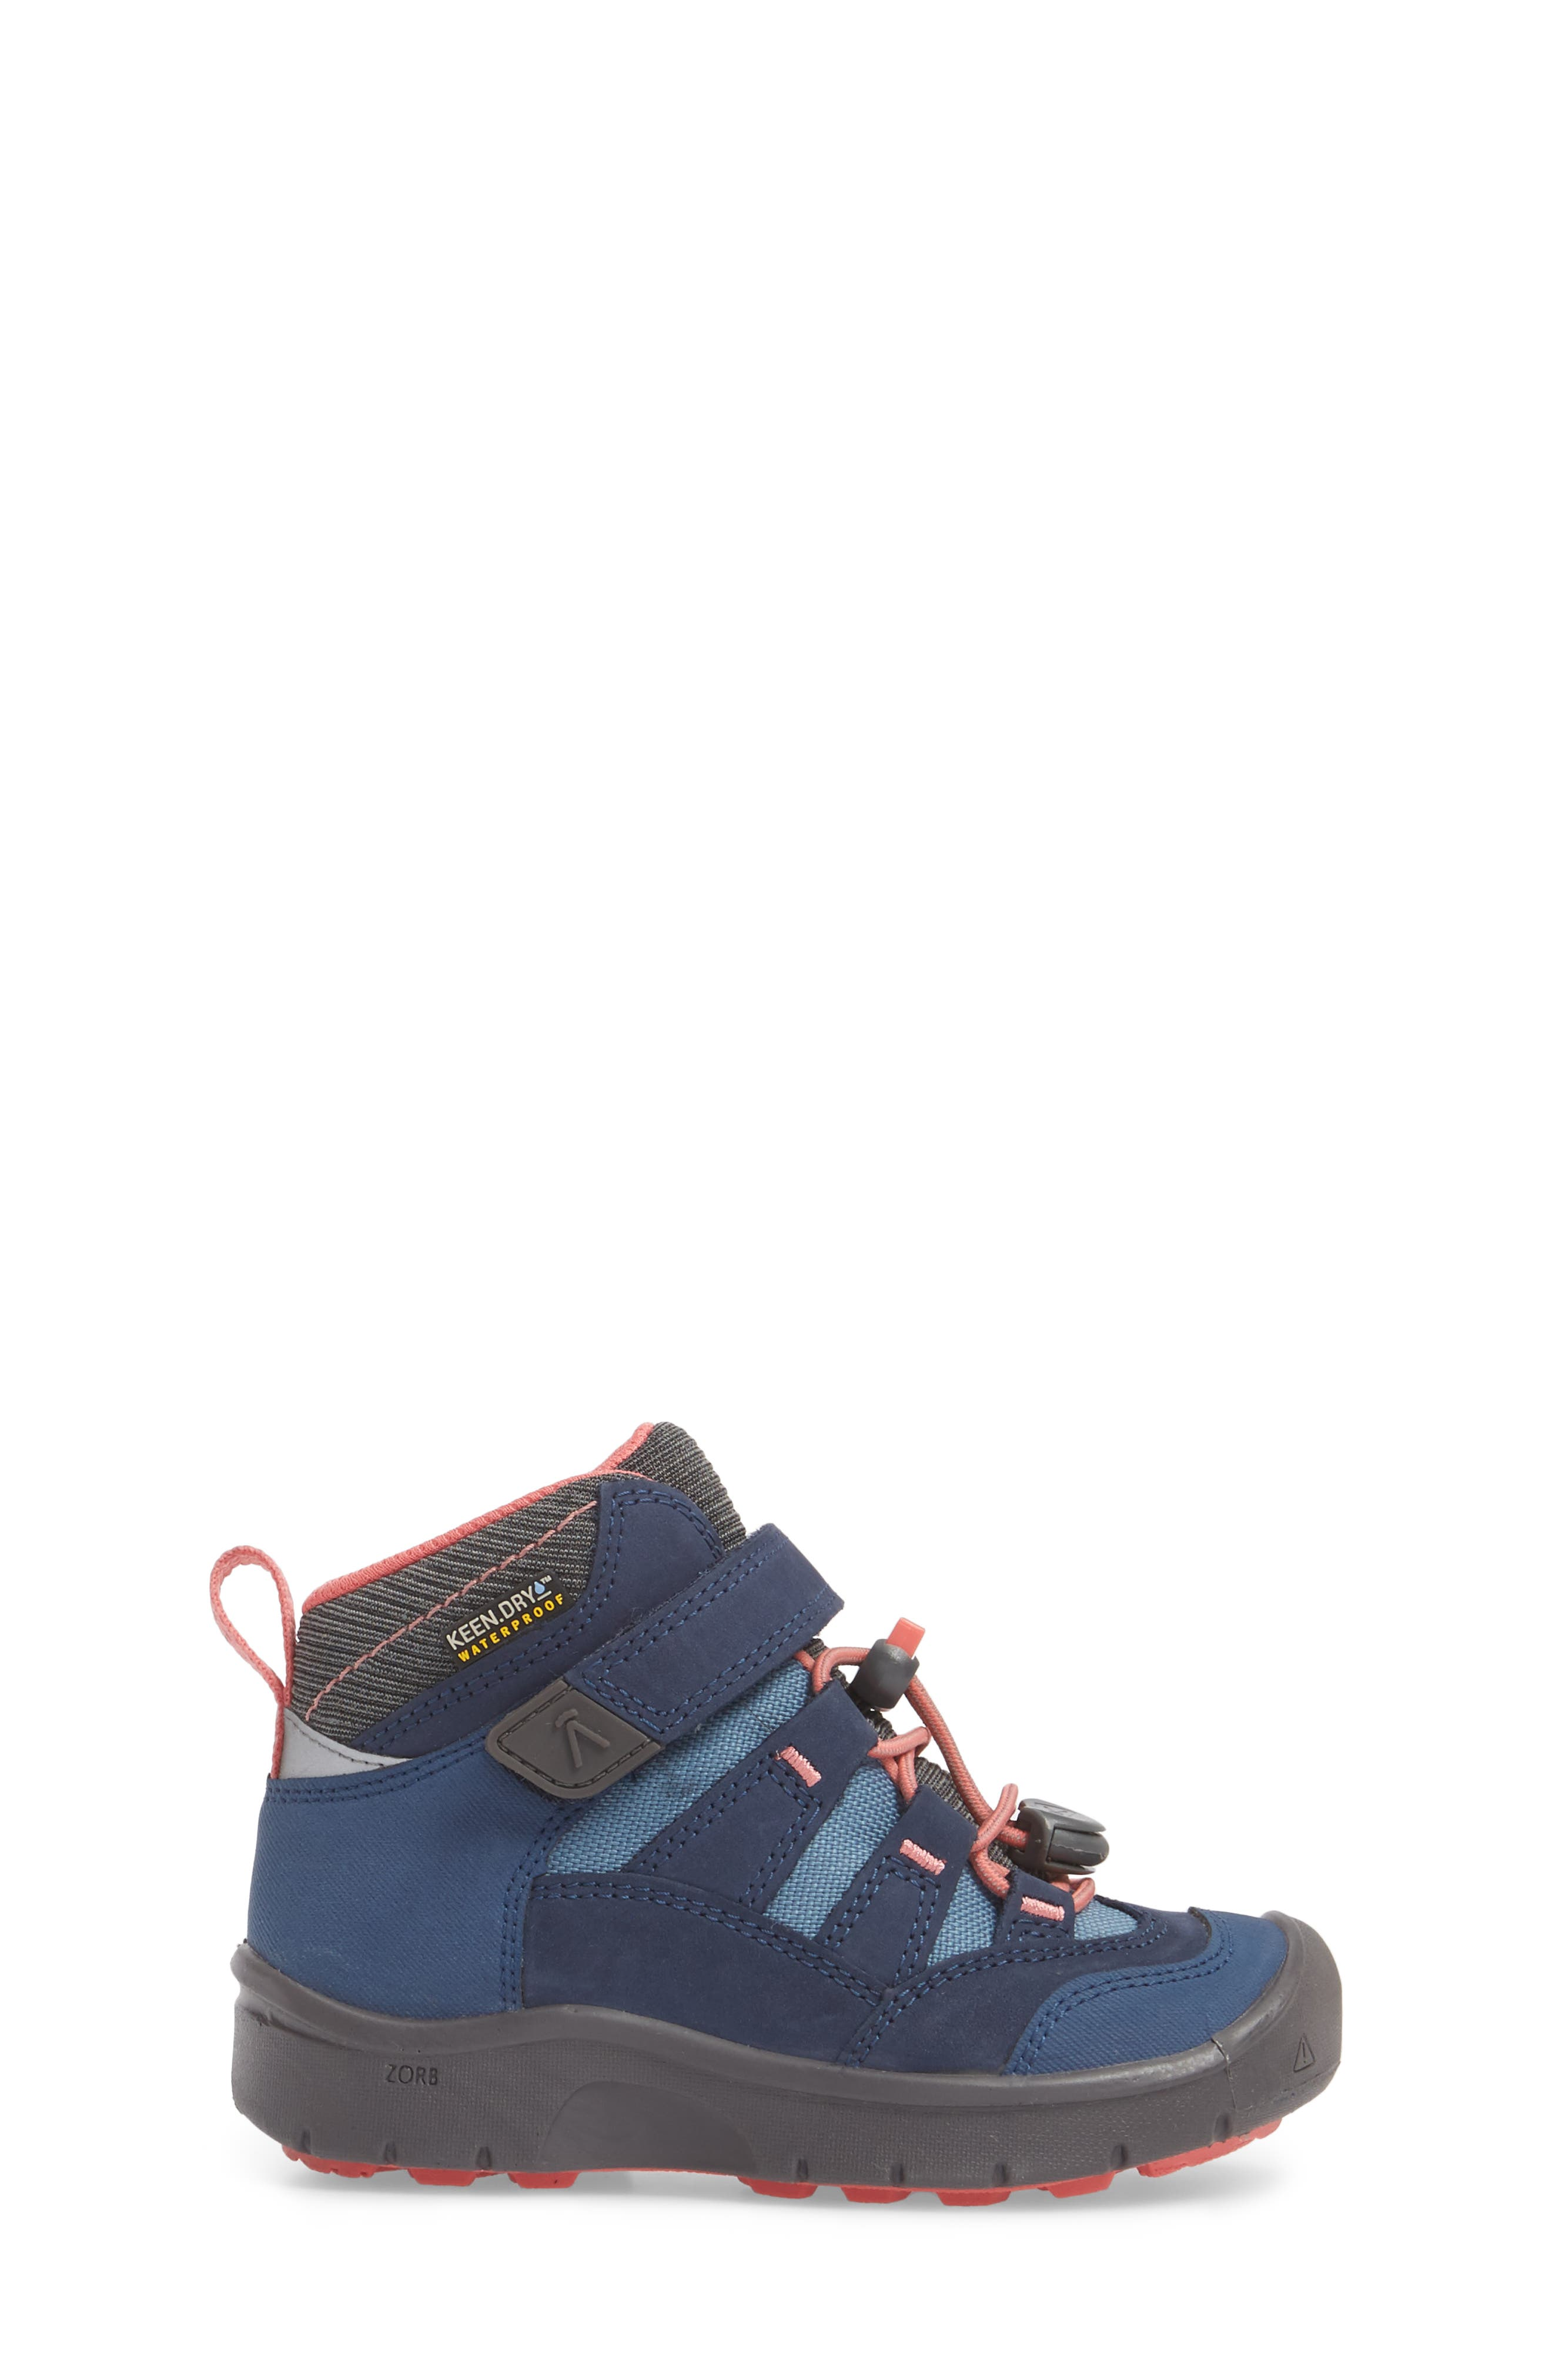 Hikeport Strap Waterproof Mid Boot,                             Alternate thumbnail 12, color,